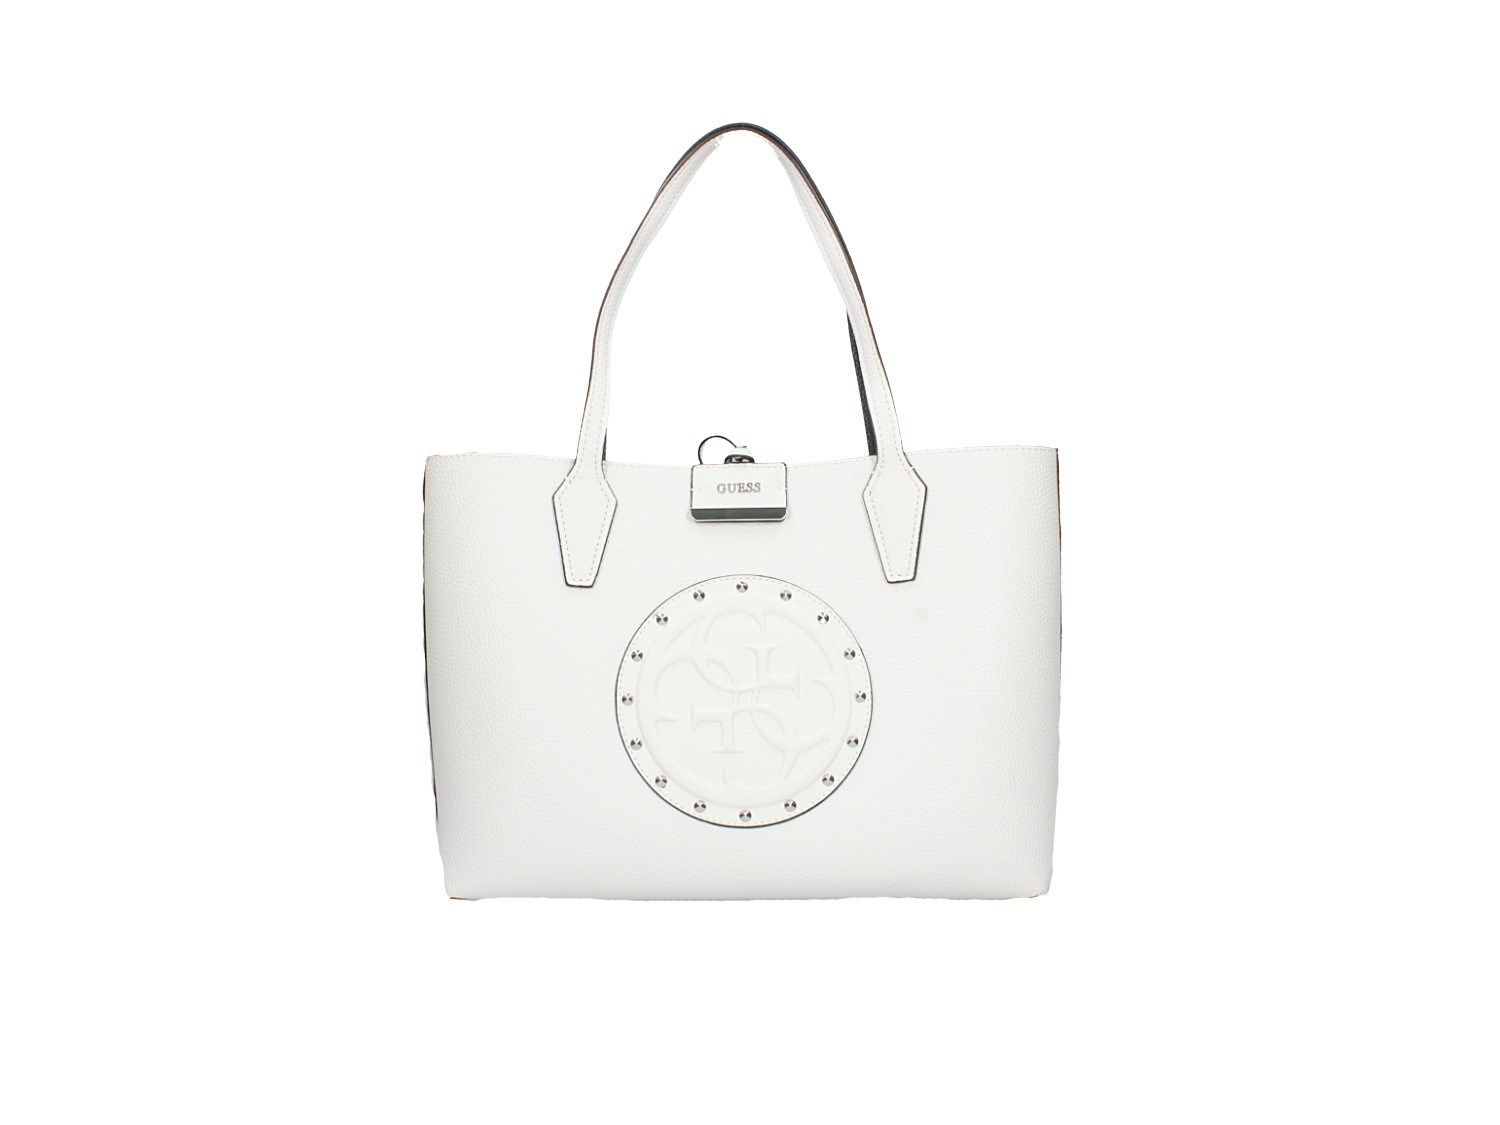 Guess Lc642215 Bianco/nero Accessori Donna Borsa